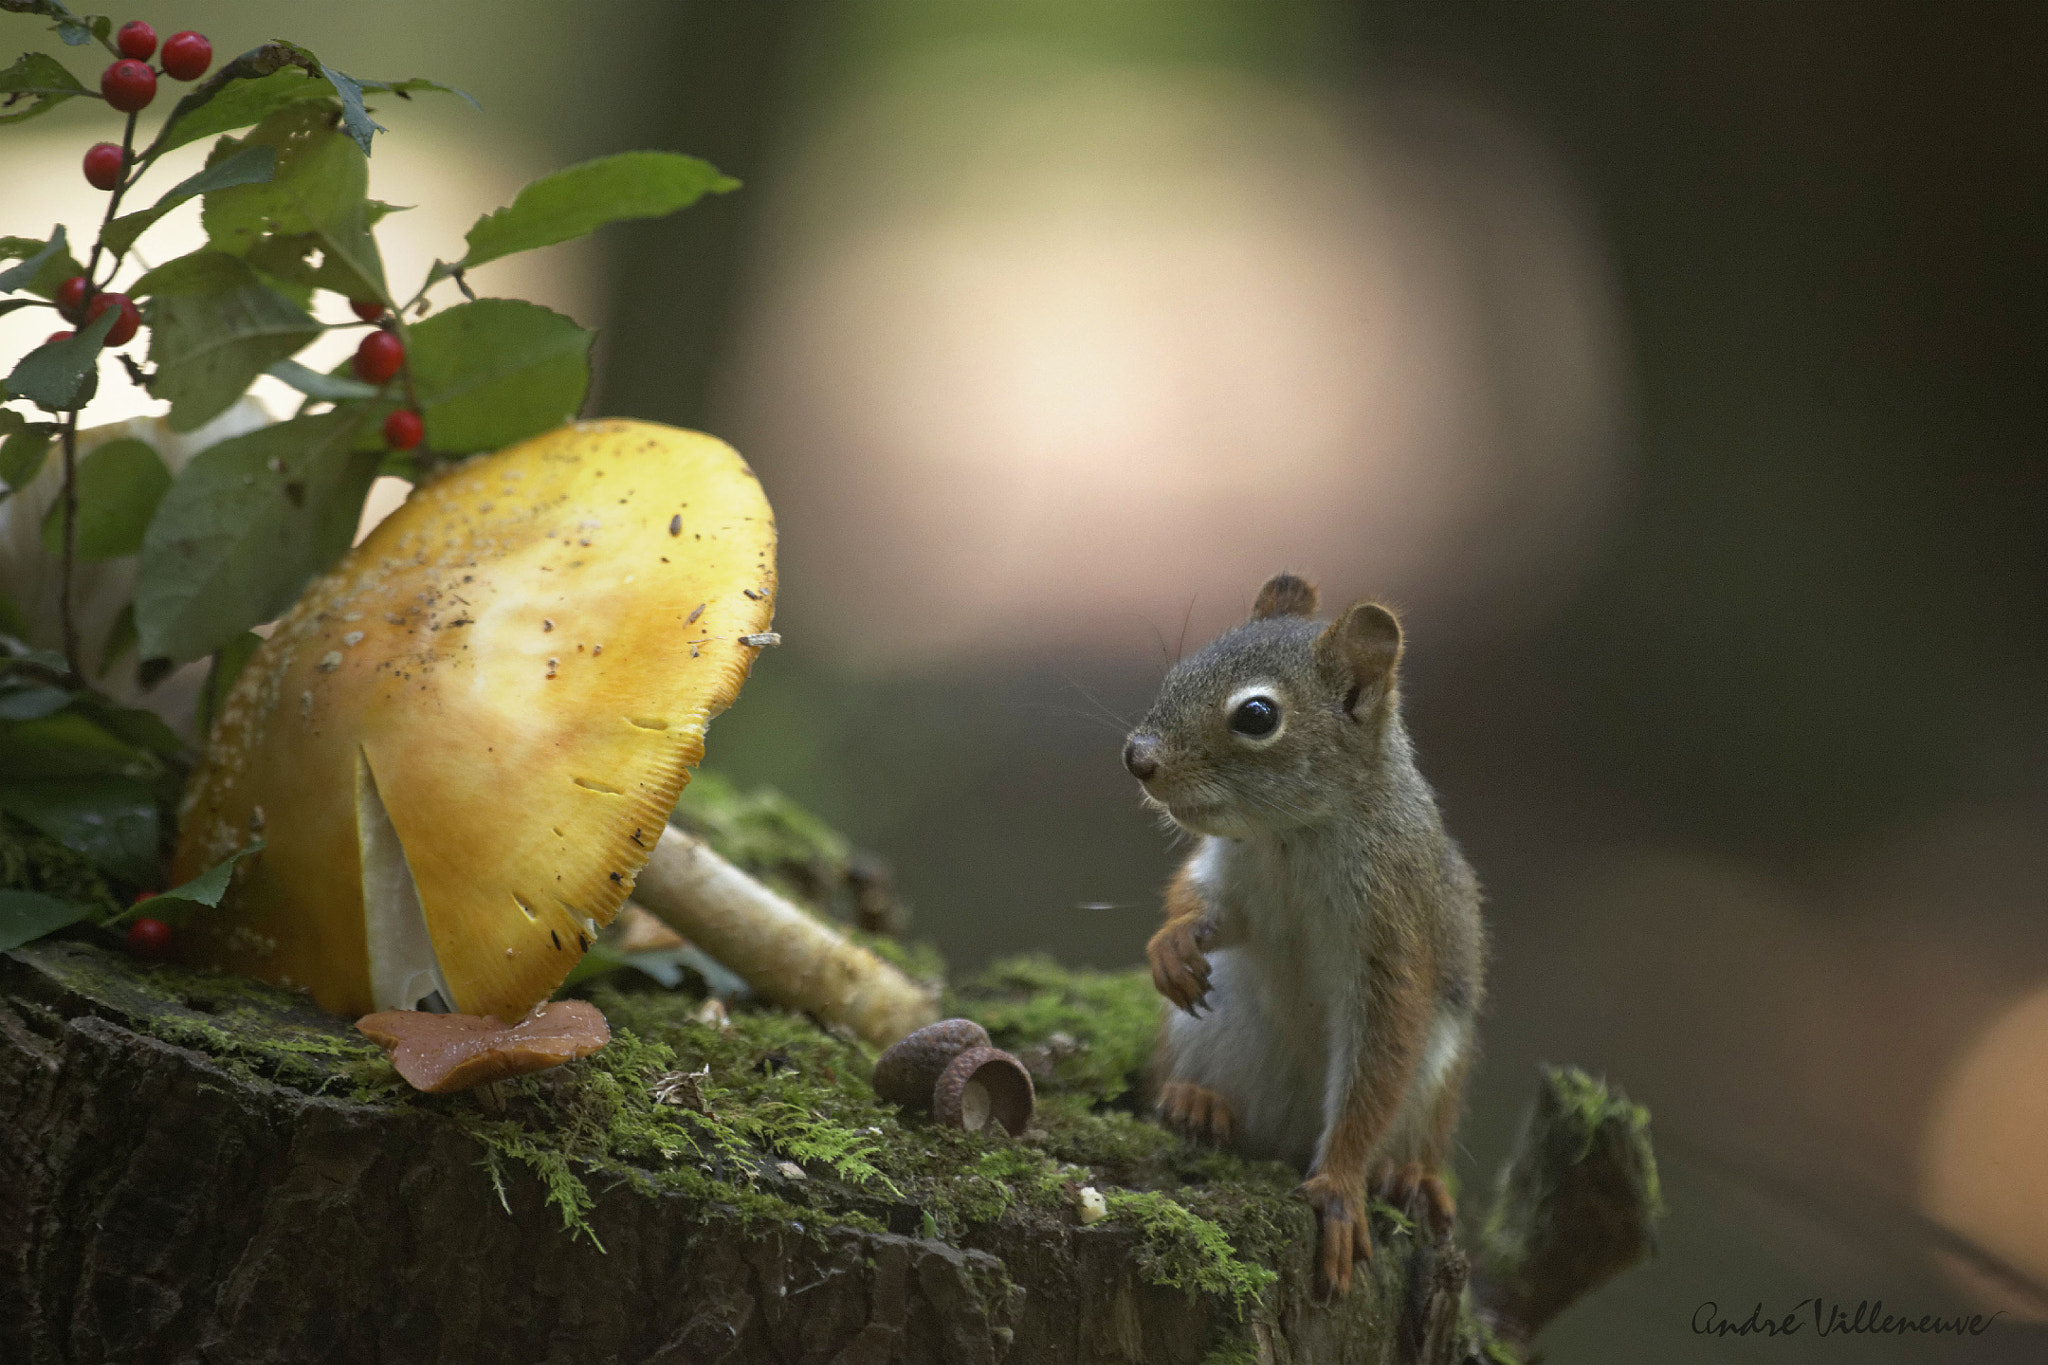 Photograph An edible umbrella by Andre Villeneuve on 500px